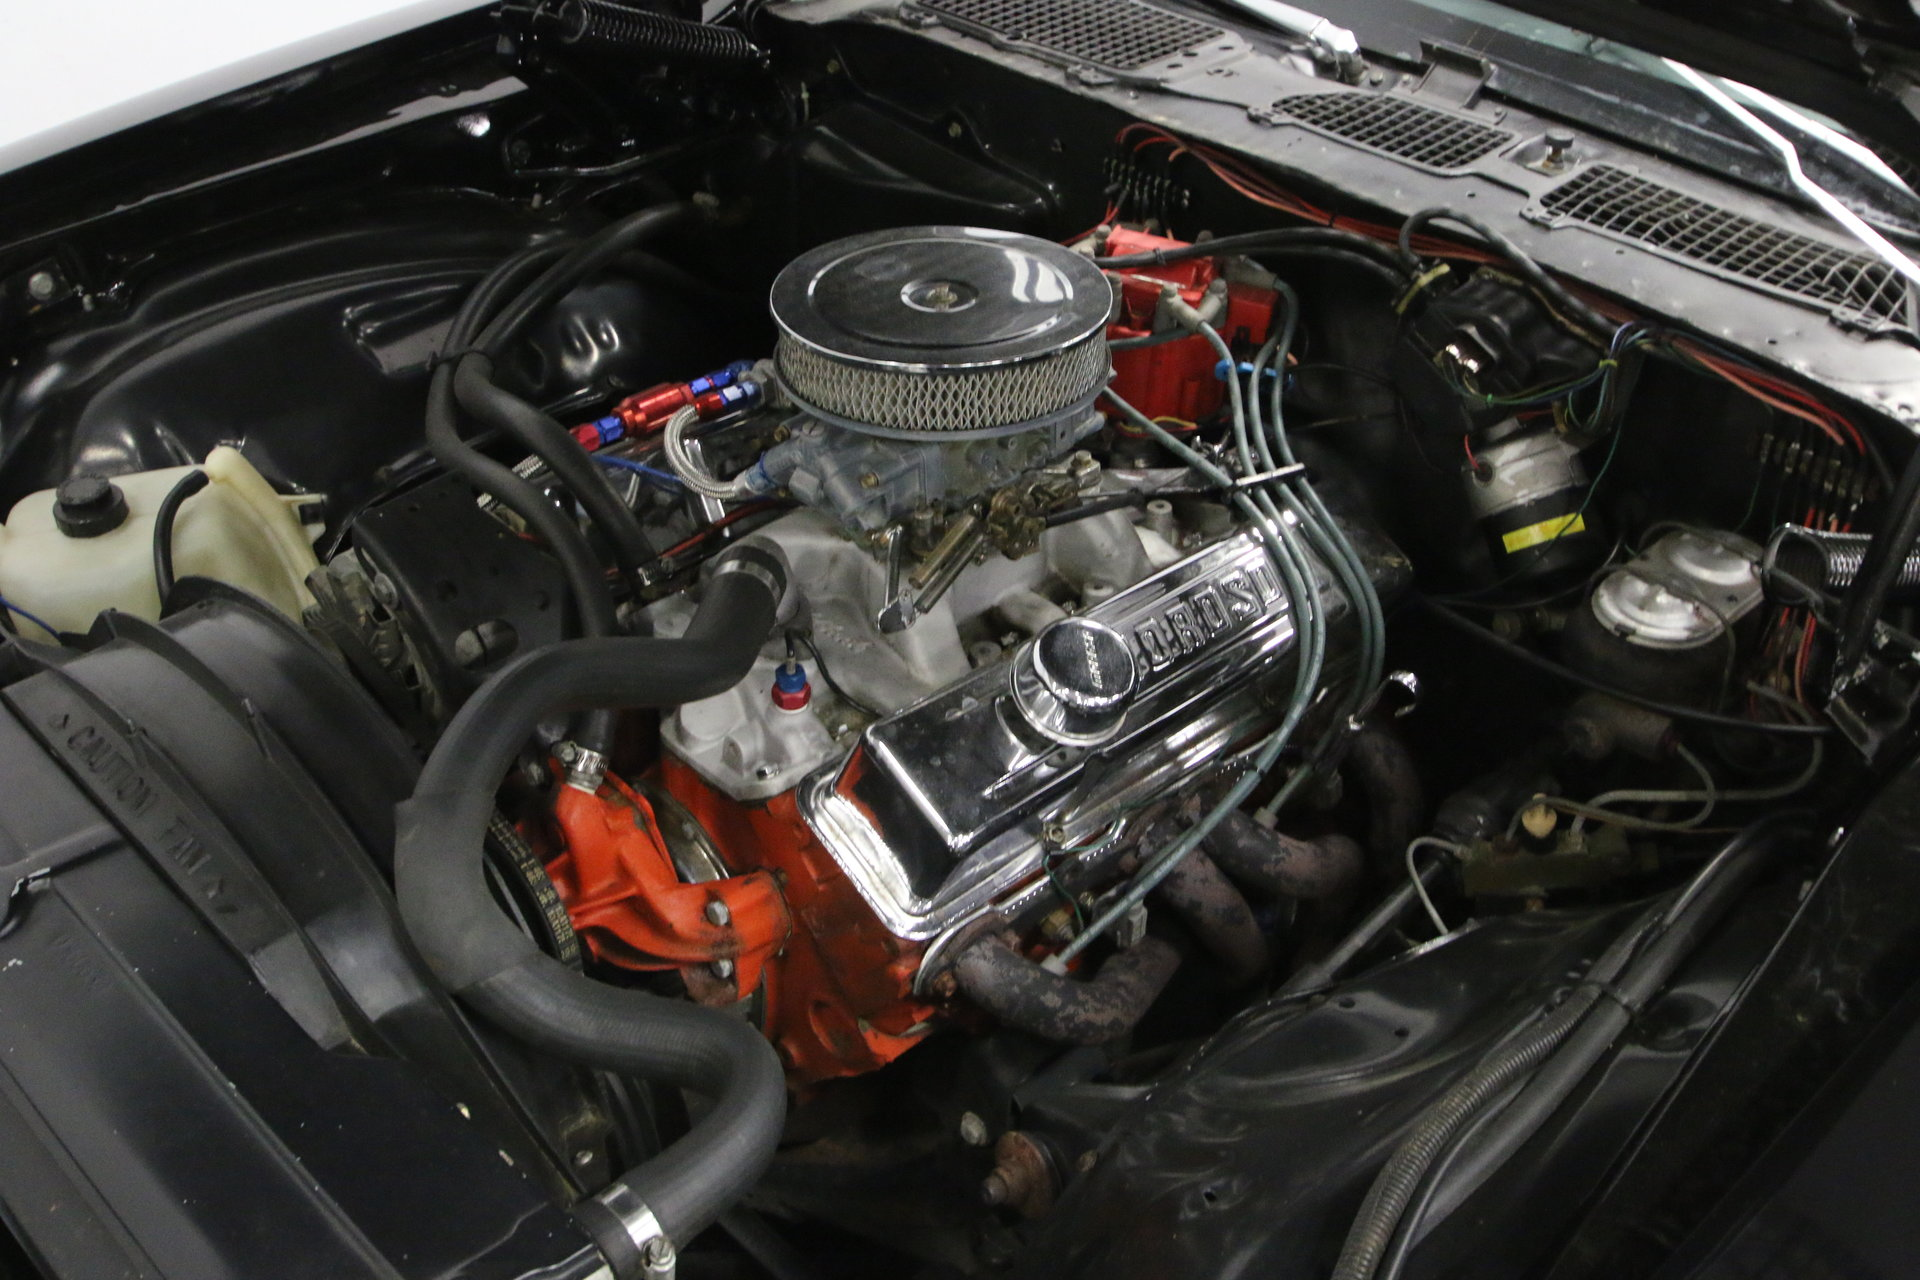 1980 Chevrolet Camaro Streetside Classics The Nations Trusted Engine Wiring Diagram On Abit View 360